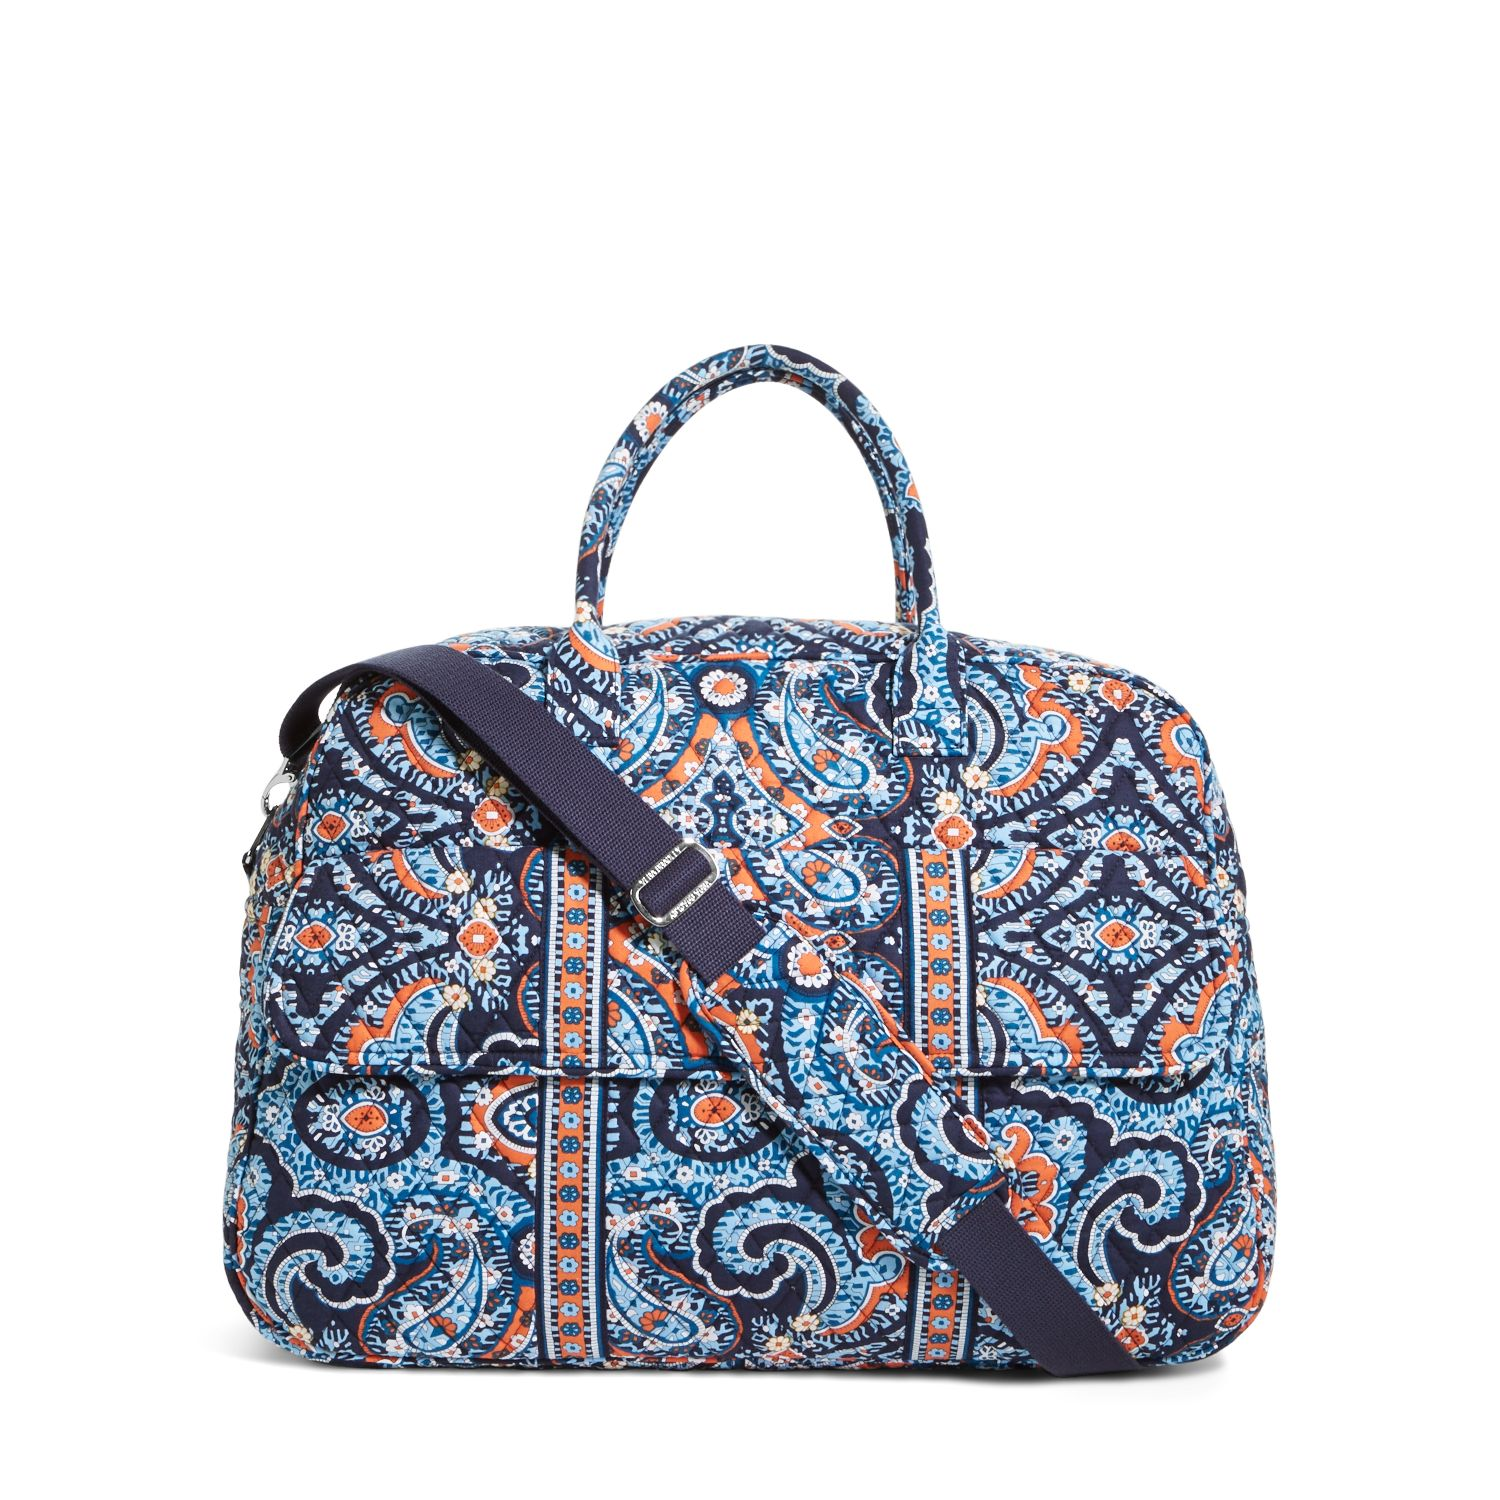 Vera Bradley Grand Traveler Bag in Marrakesh